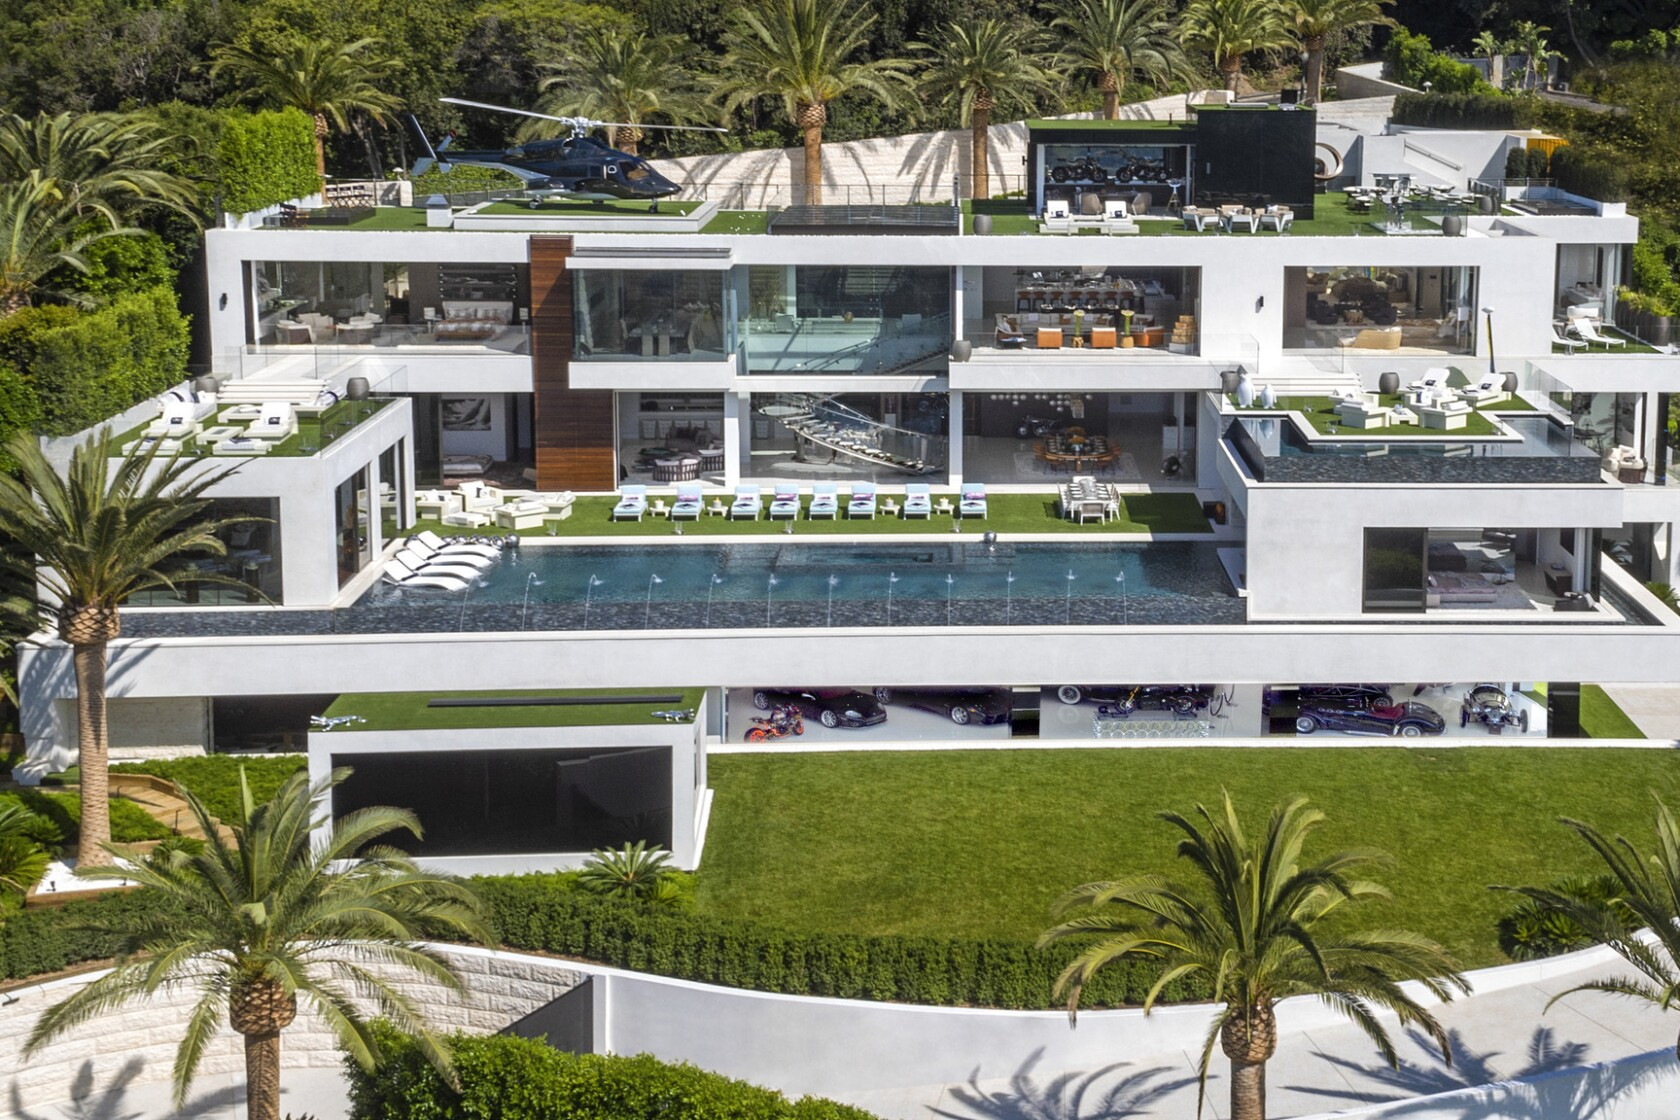 The U.S.' priciest house for sale is a Bel-Air mansion that ... on design house plans, 4 bedroom house plans, attached house plans, ground house plans, ready house plans, recorded house plans, family house plans, english house plans, kitchen house plans, fabricated house plans, decorated house plans, bath house plans, walk-out house plans, workshop house plans, complete house plans, drive under house plans, apartment house plans, open house plans, all house plans, basement house plans,